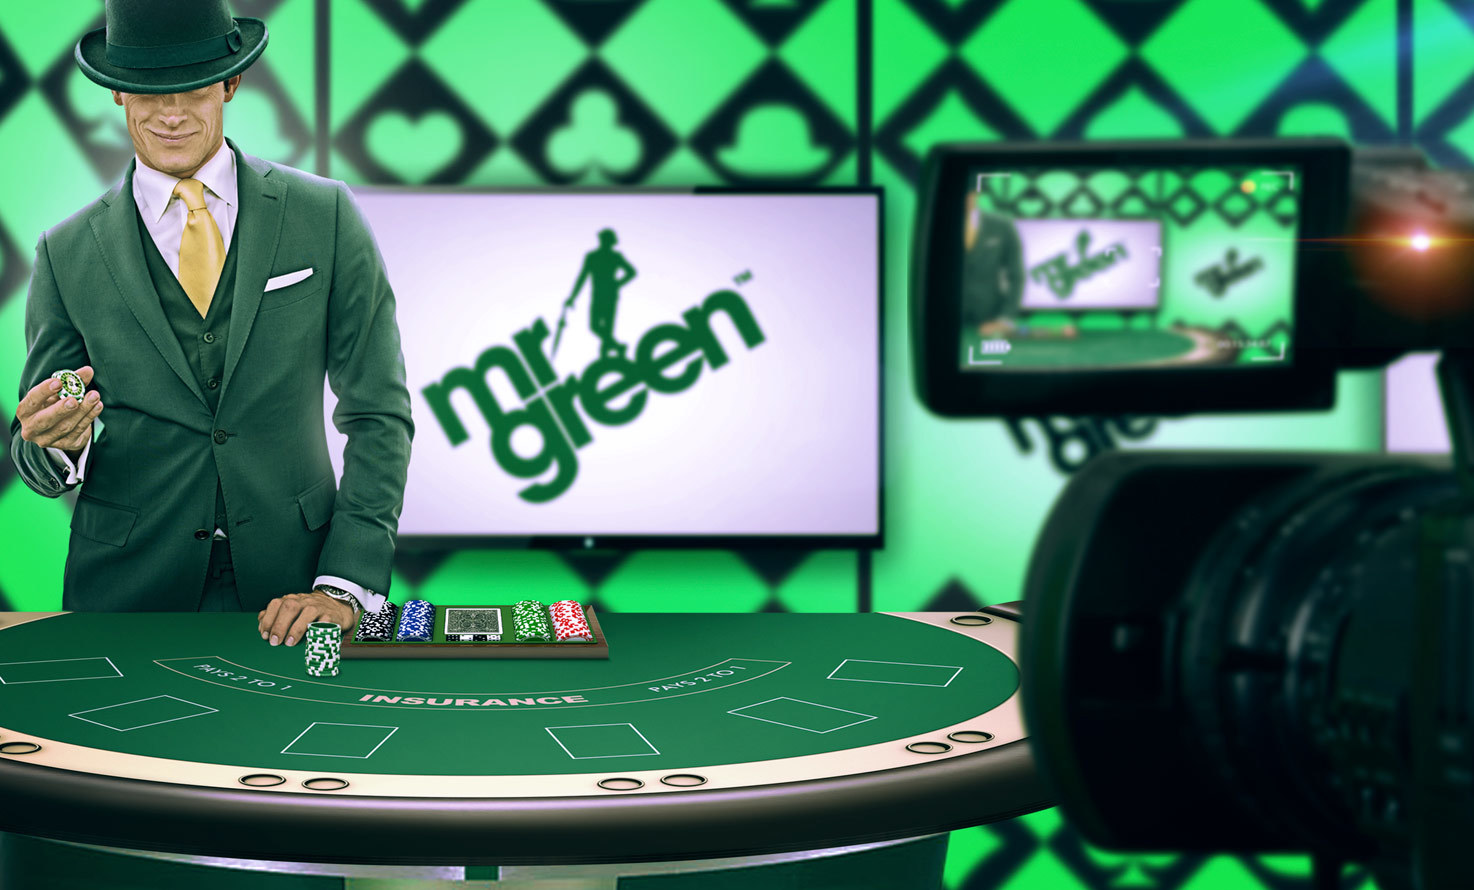 Mr green casino usa